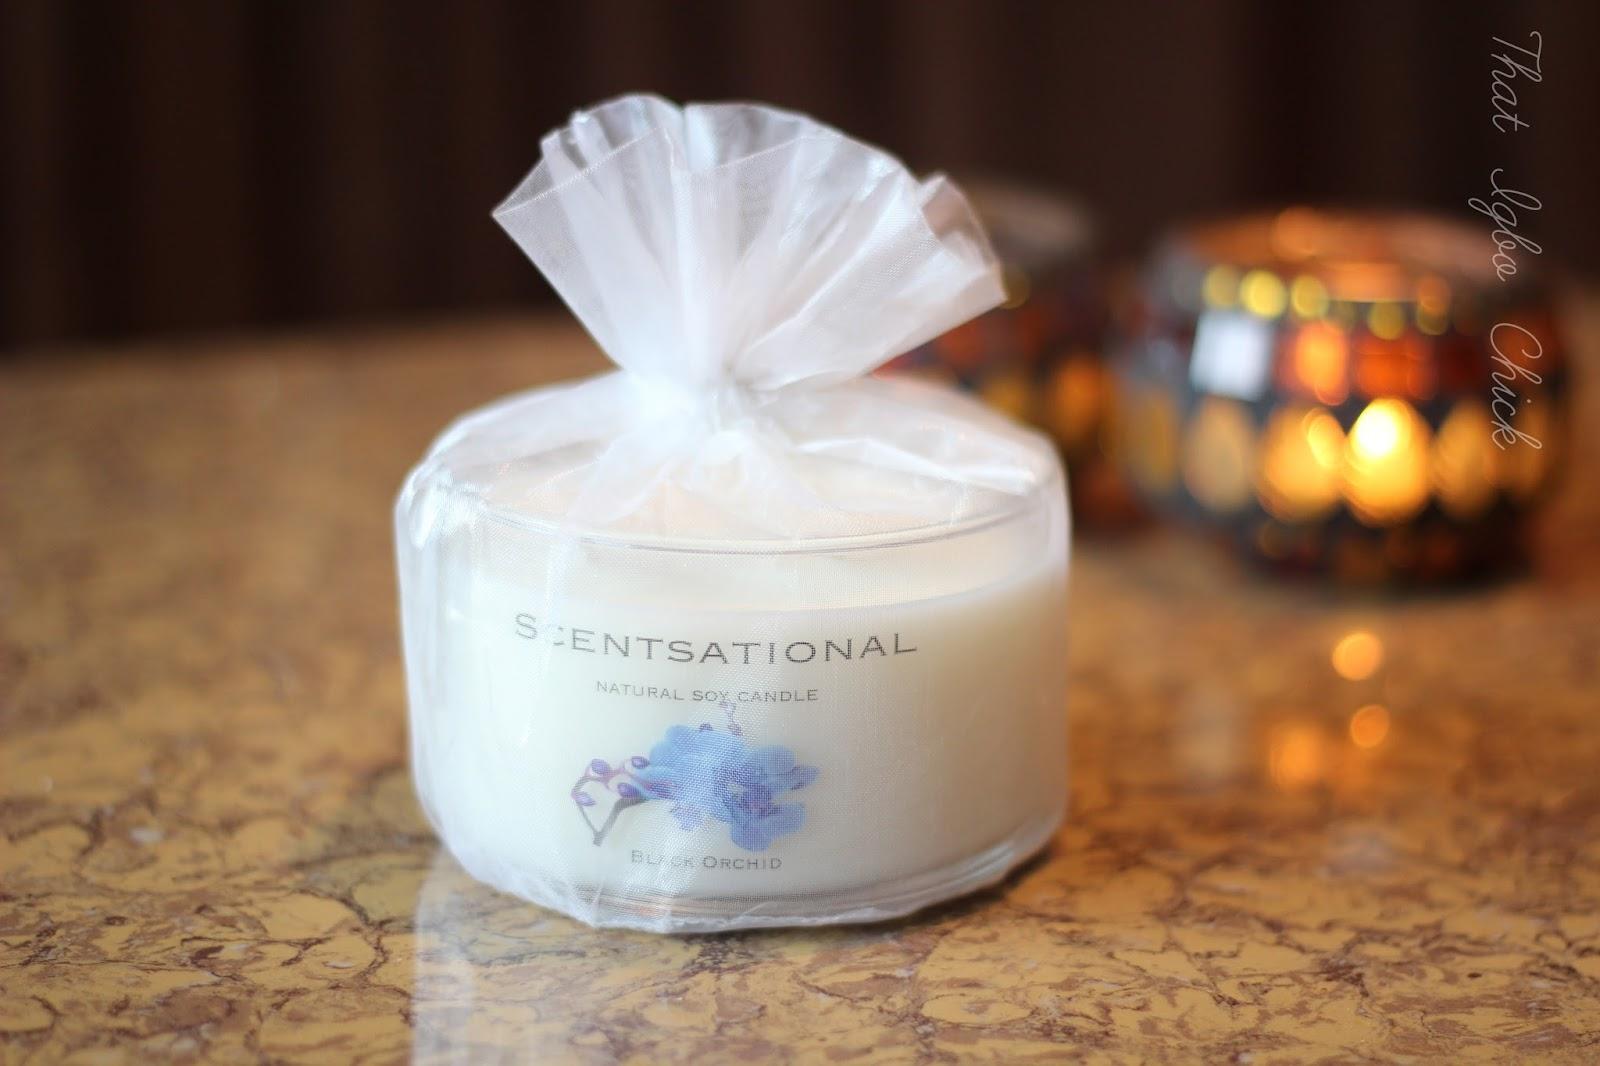 Scentsational Natural Soy Candle Black Orchid